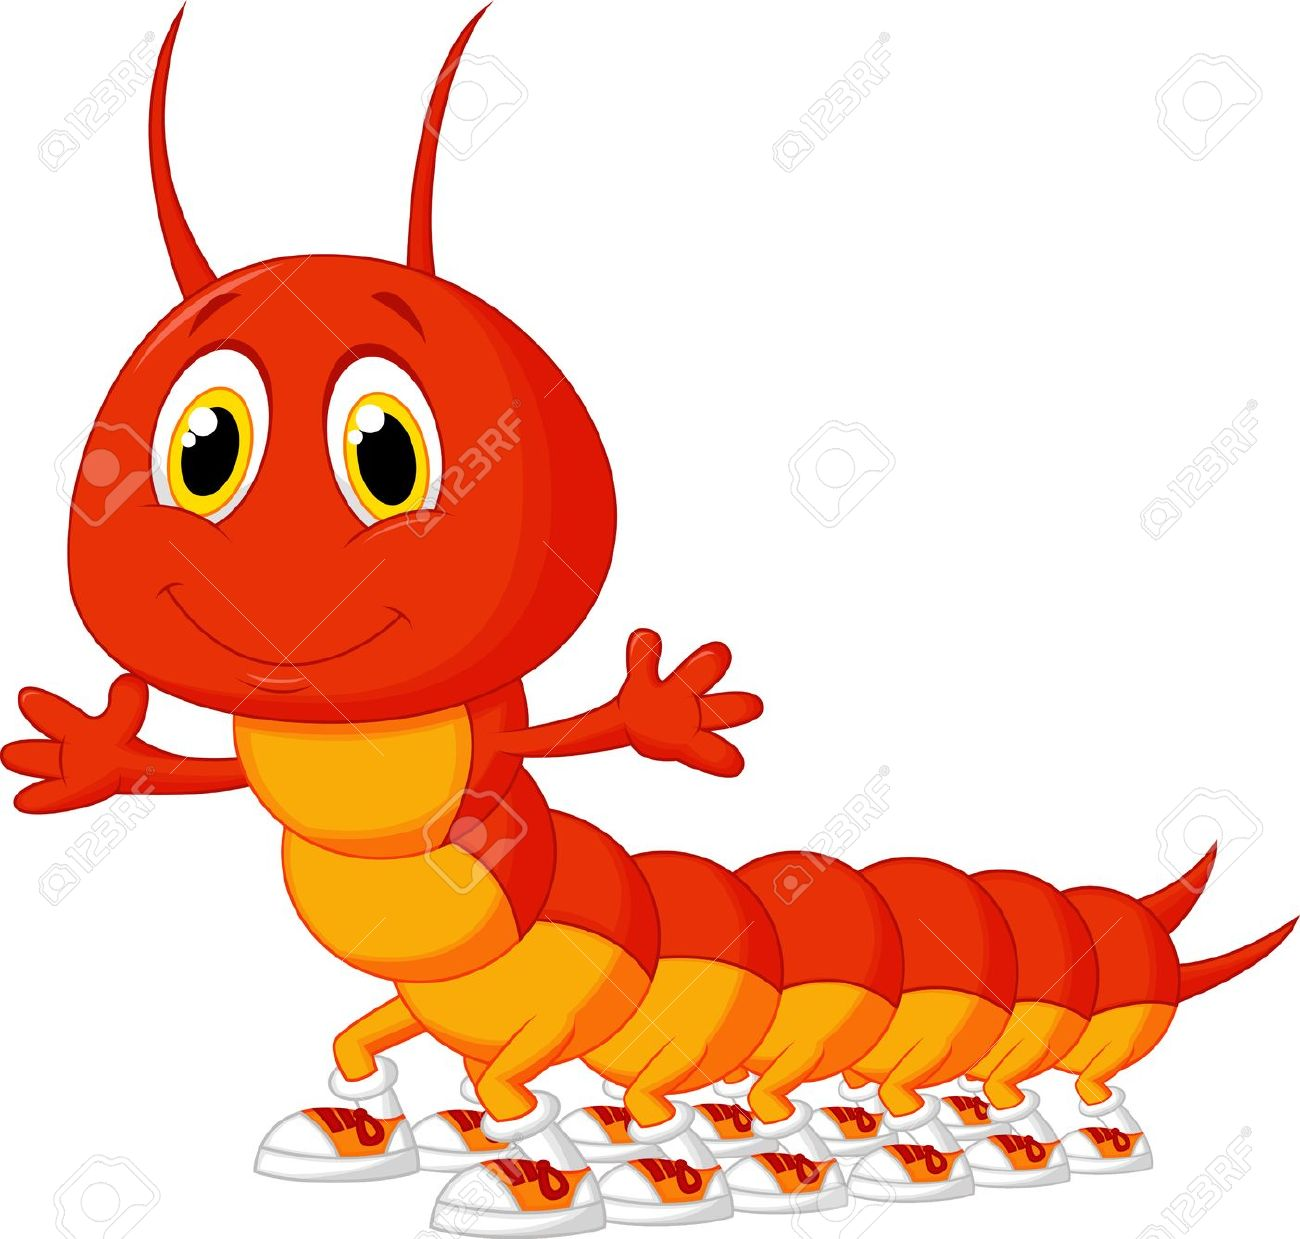 5,871 Caterpillar Stock Vector Illustration And Royalty Free.